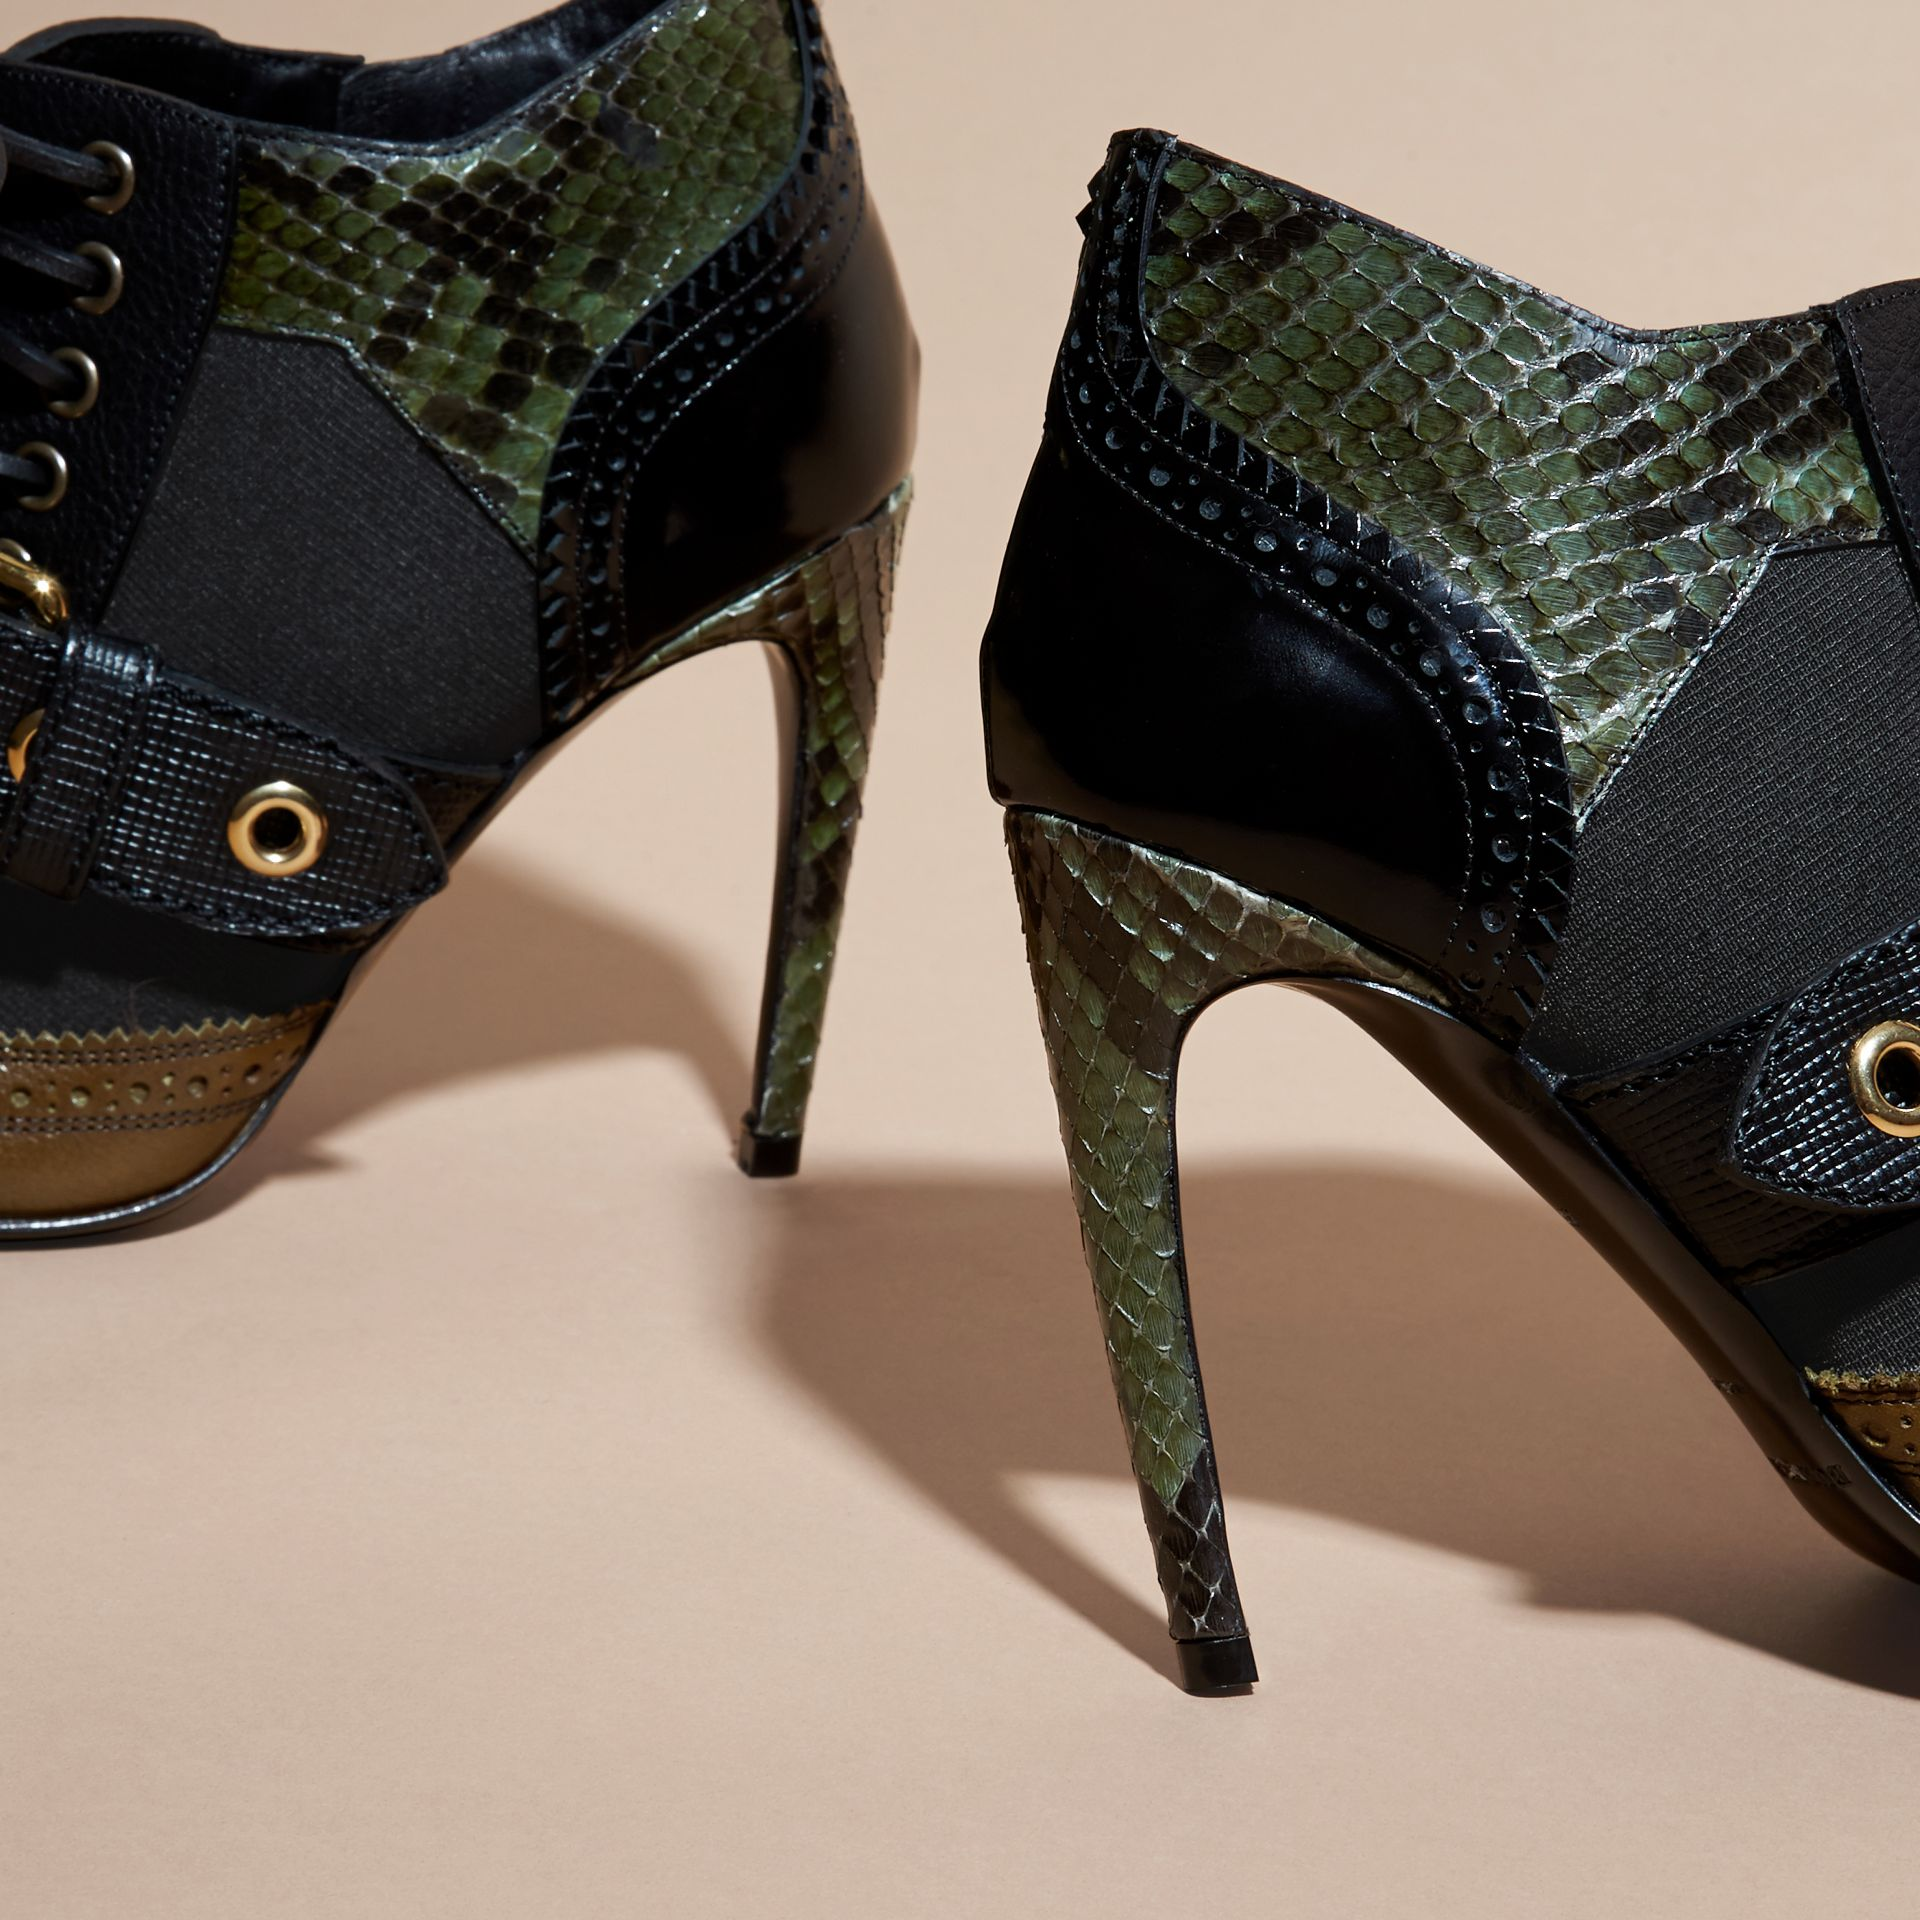 Buckle Detail Leather and Snakeskin Ankle Boots Military Olive - gallery image 4